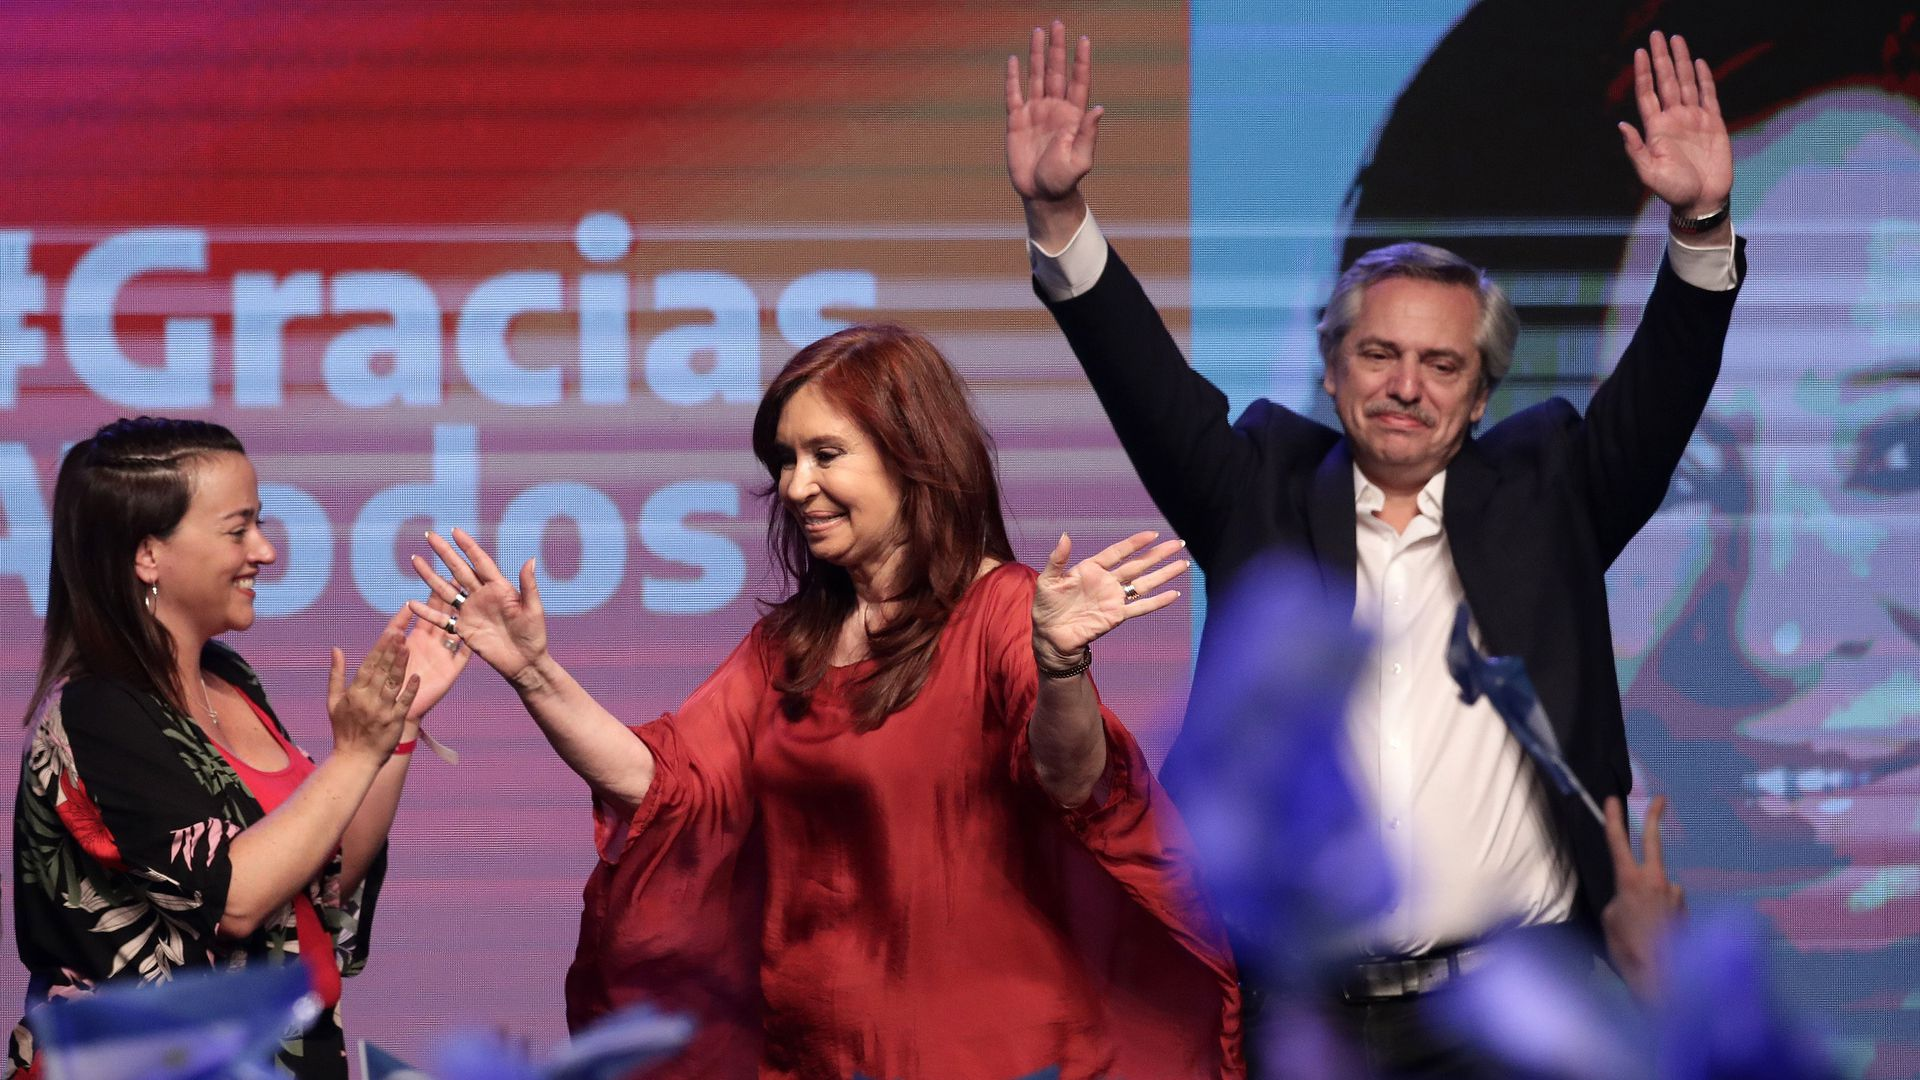 Alberto Fernandez and Cristina Fernandez de Kirchner on stage celebrating victory